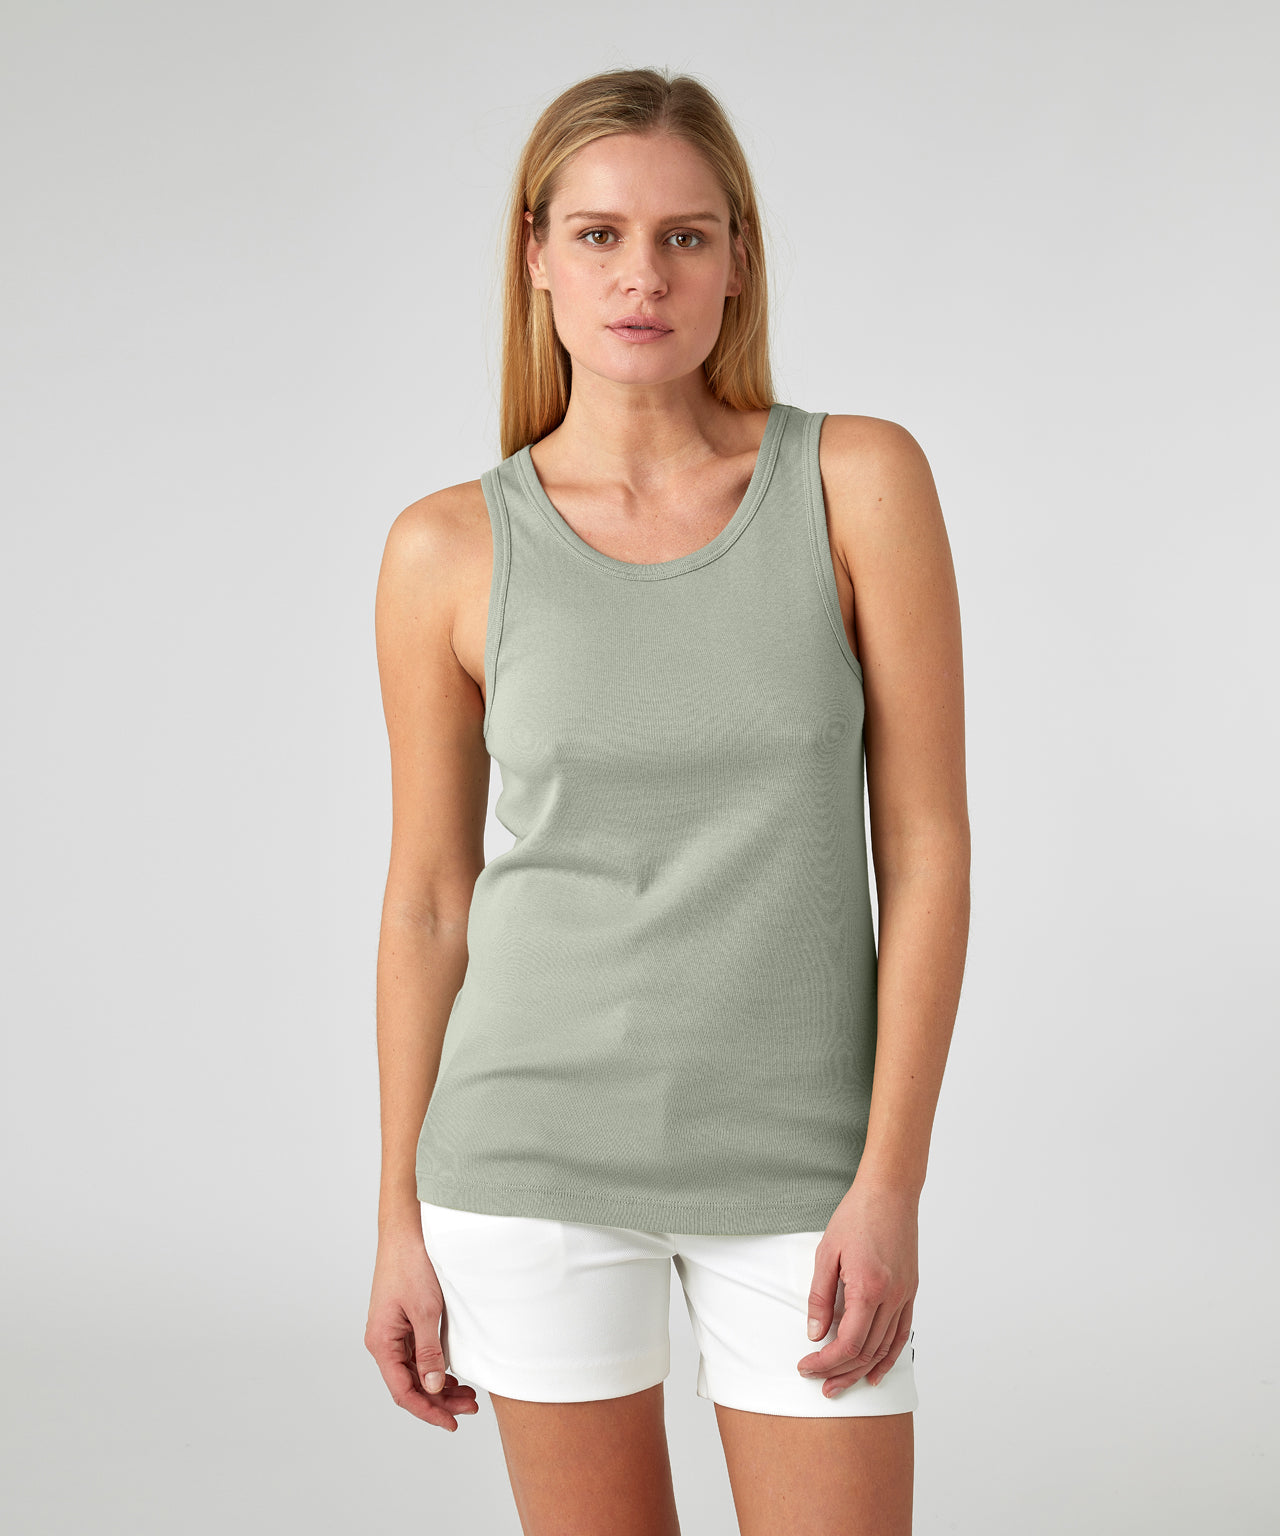 Ribbed Tank Top His For Her - light khaki